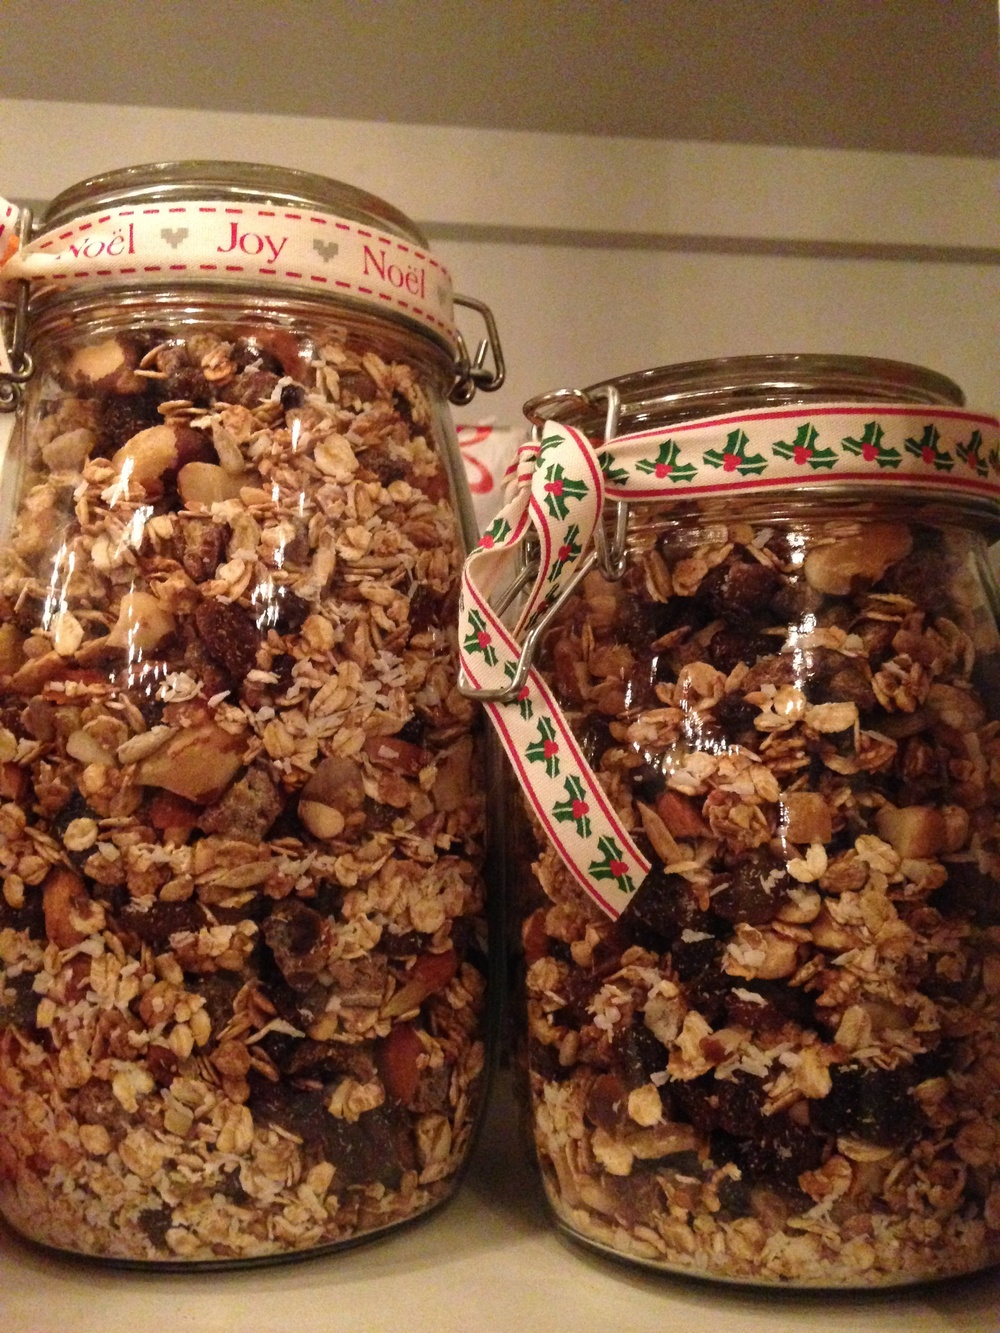 Homemade festive granola jarred, ribboned and ready for Christmas morning.